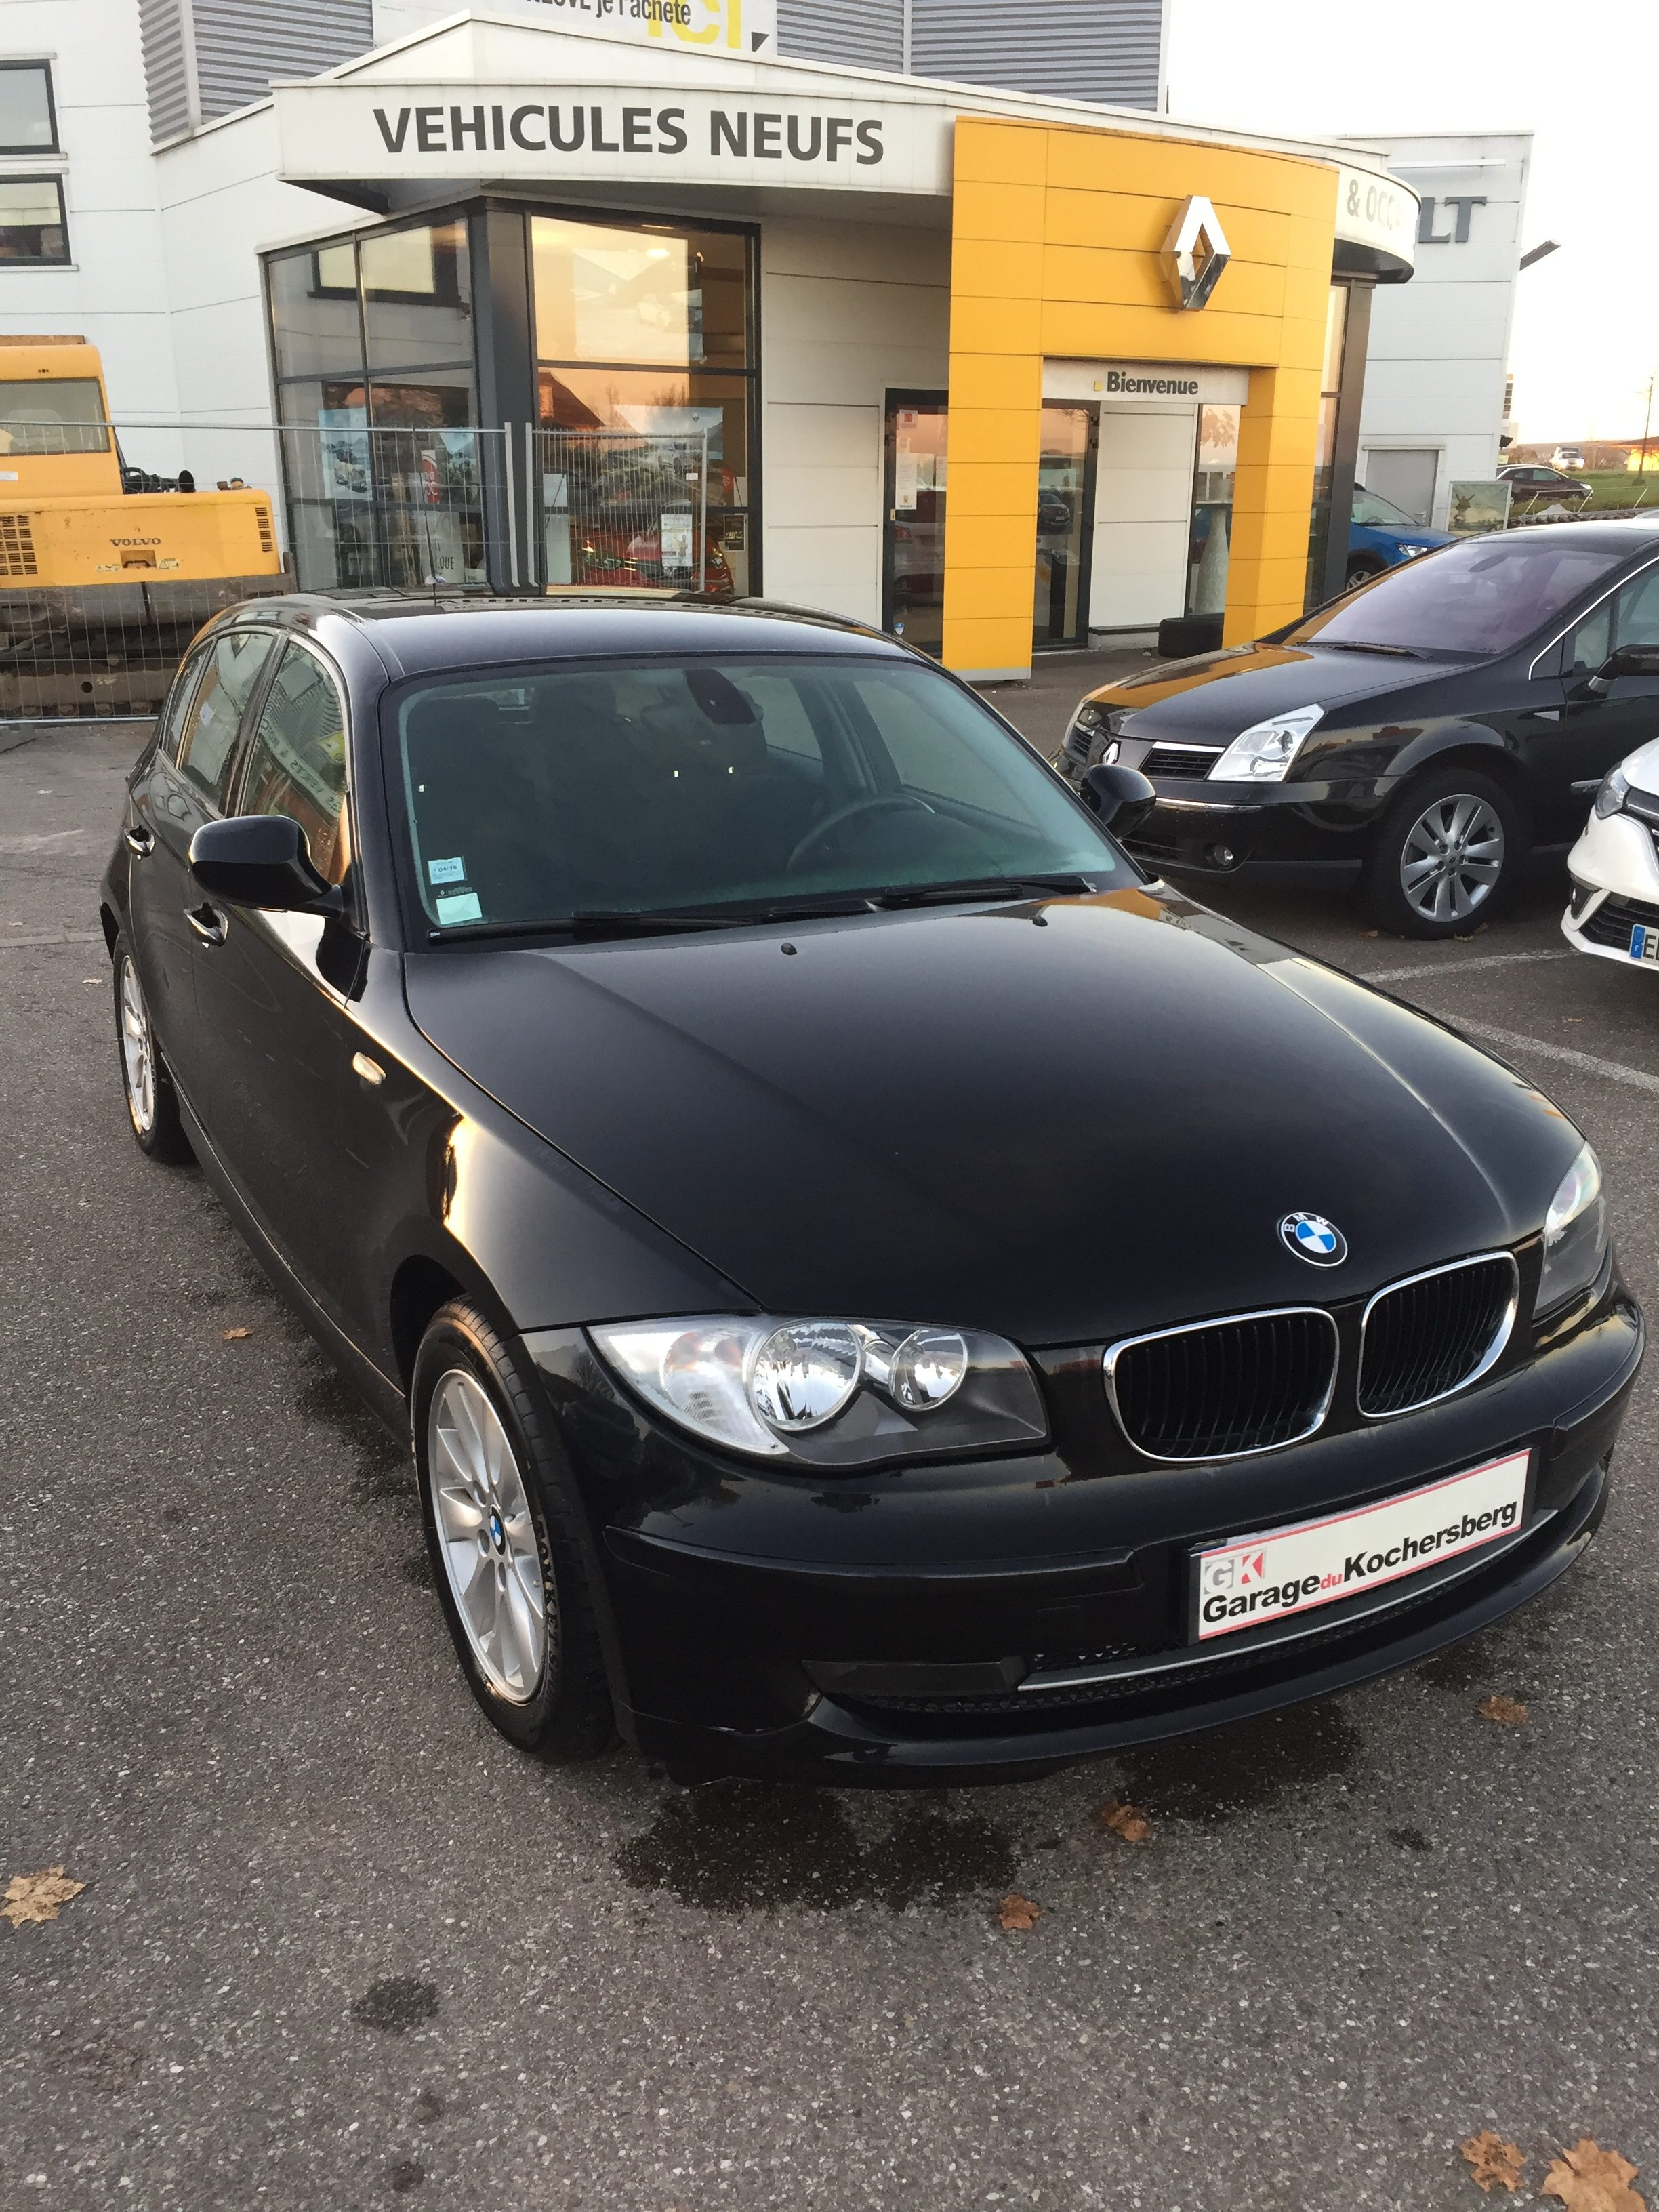 Bmw s rie 1 e87 118d 143ch confort garage du kochersberg for Garage mecanique bmw